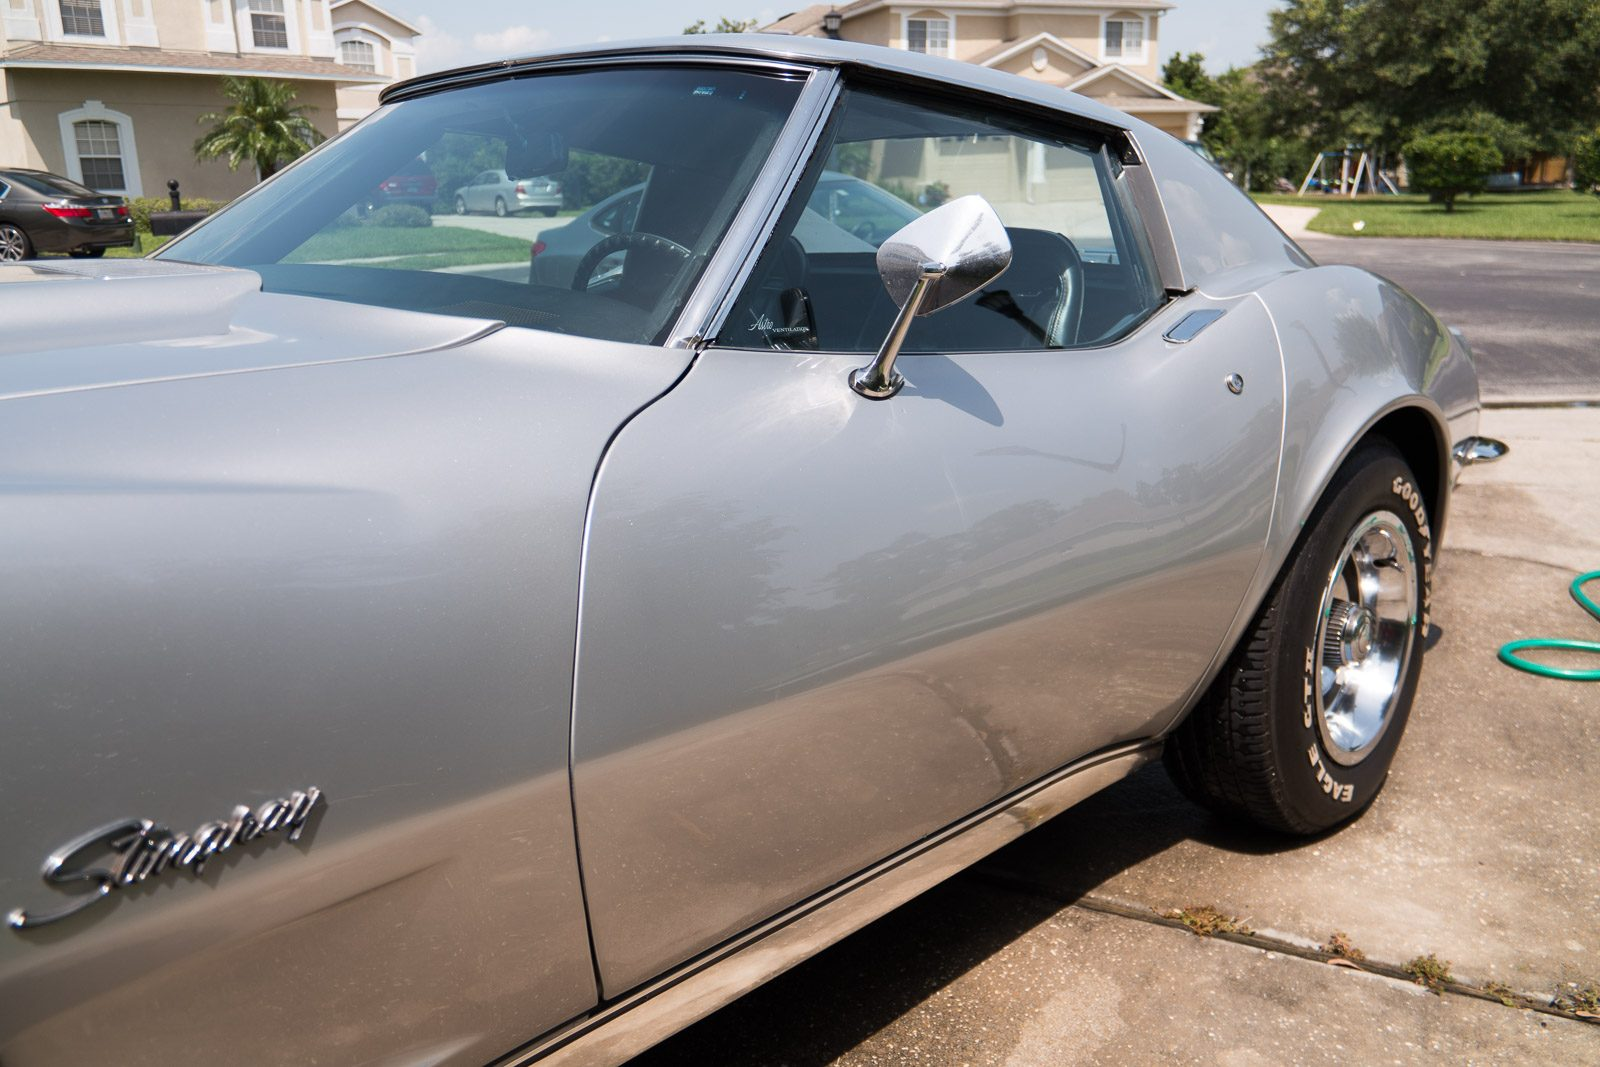 Picture of 1973 chevrolet corvette coupe exterior - Gallery 1973 Chevrolet Corvette Stingray For Sale 07